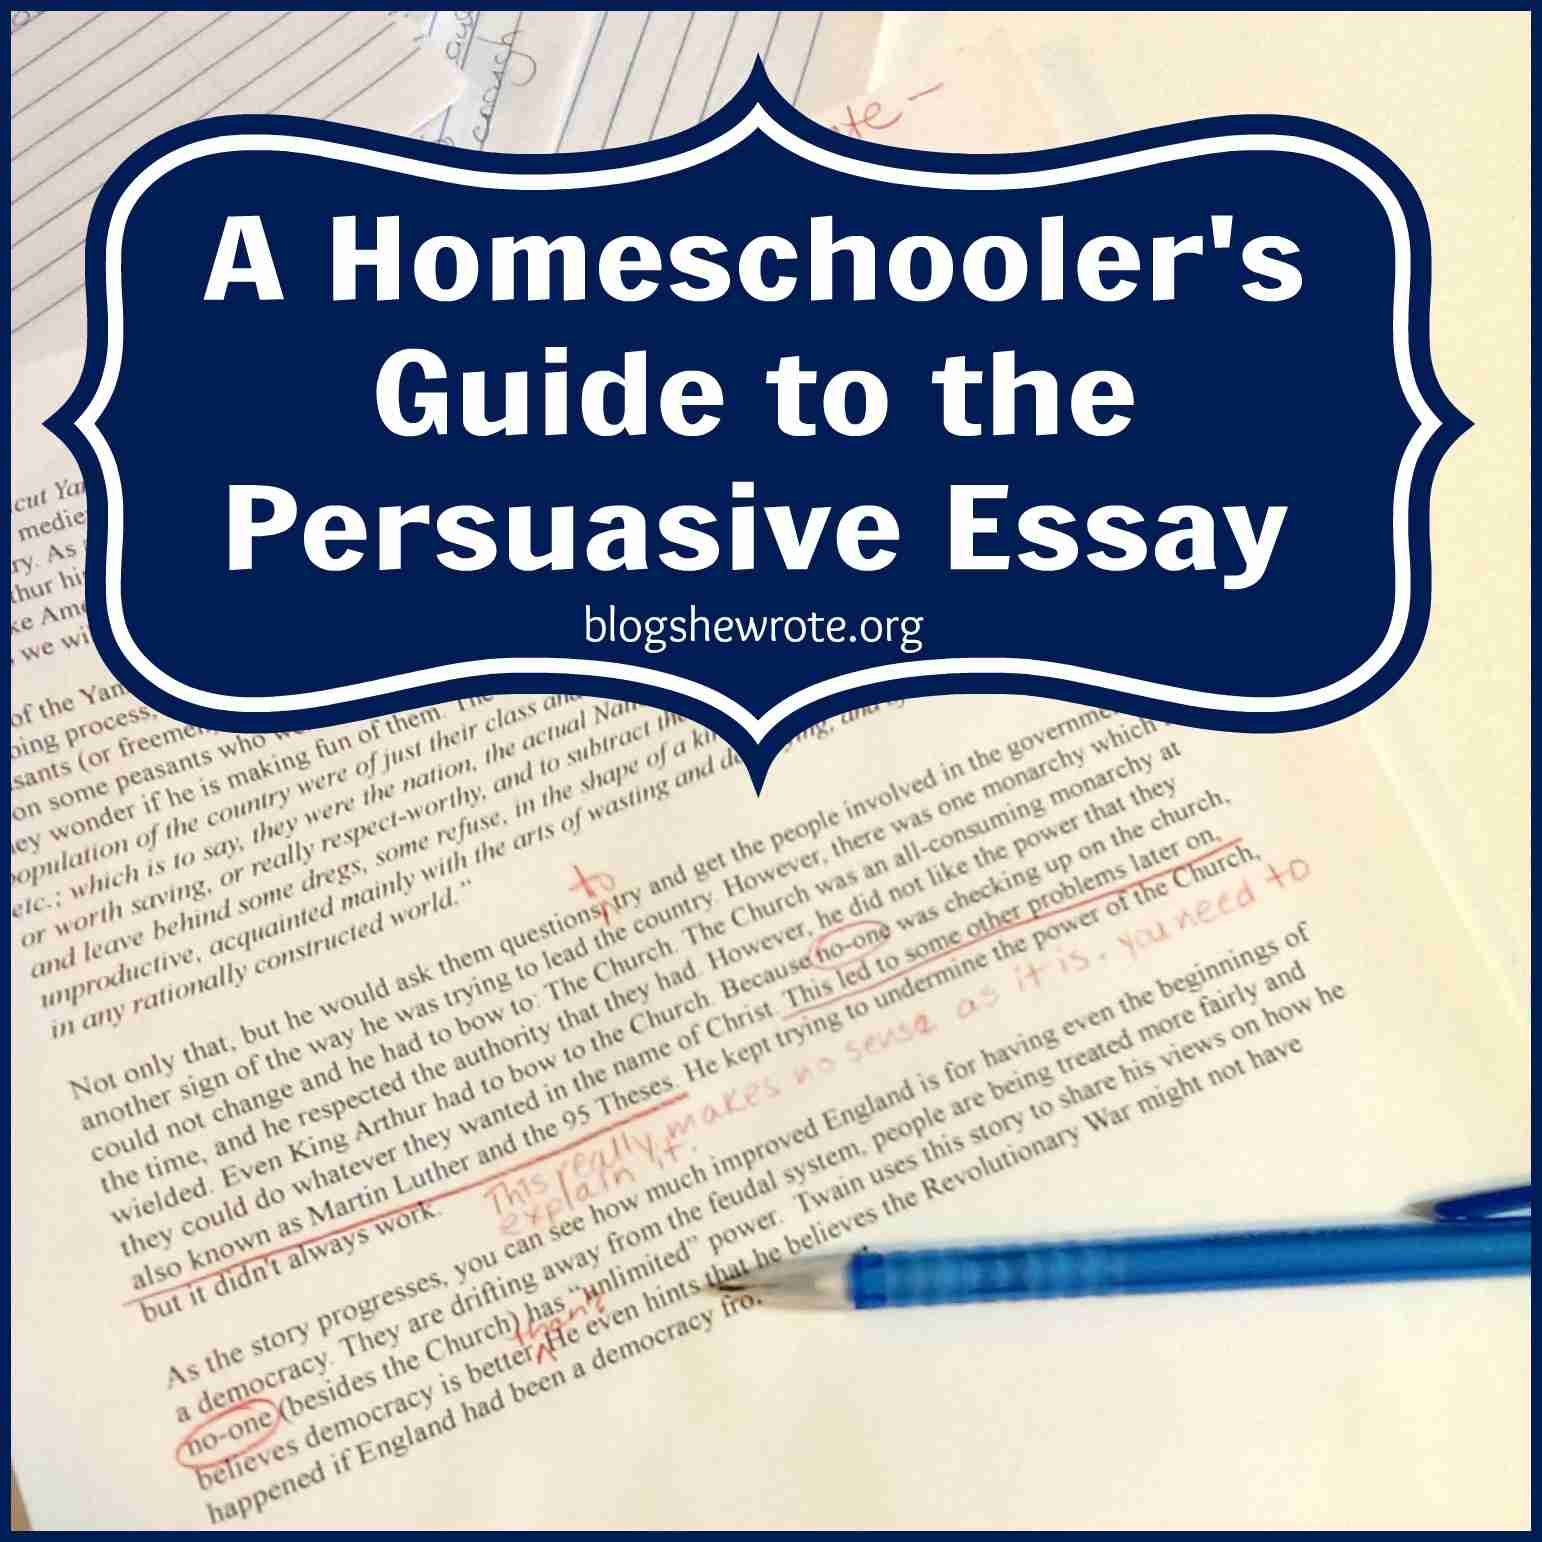 Critique Essay Outline Blog She Wrote A Homeschoolers Guide To The Persuasive Essay Lord Of The Flies Essay Prompts also Narrative Essay On Death A Homeschoolers Guide To The Persuasive Essay  Blog She Wrote My Teacher Essay